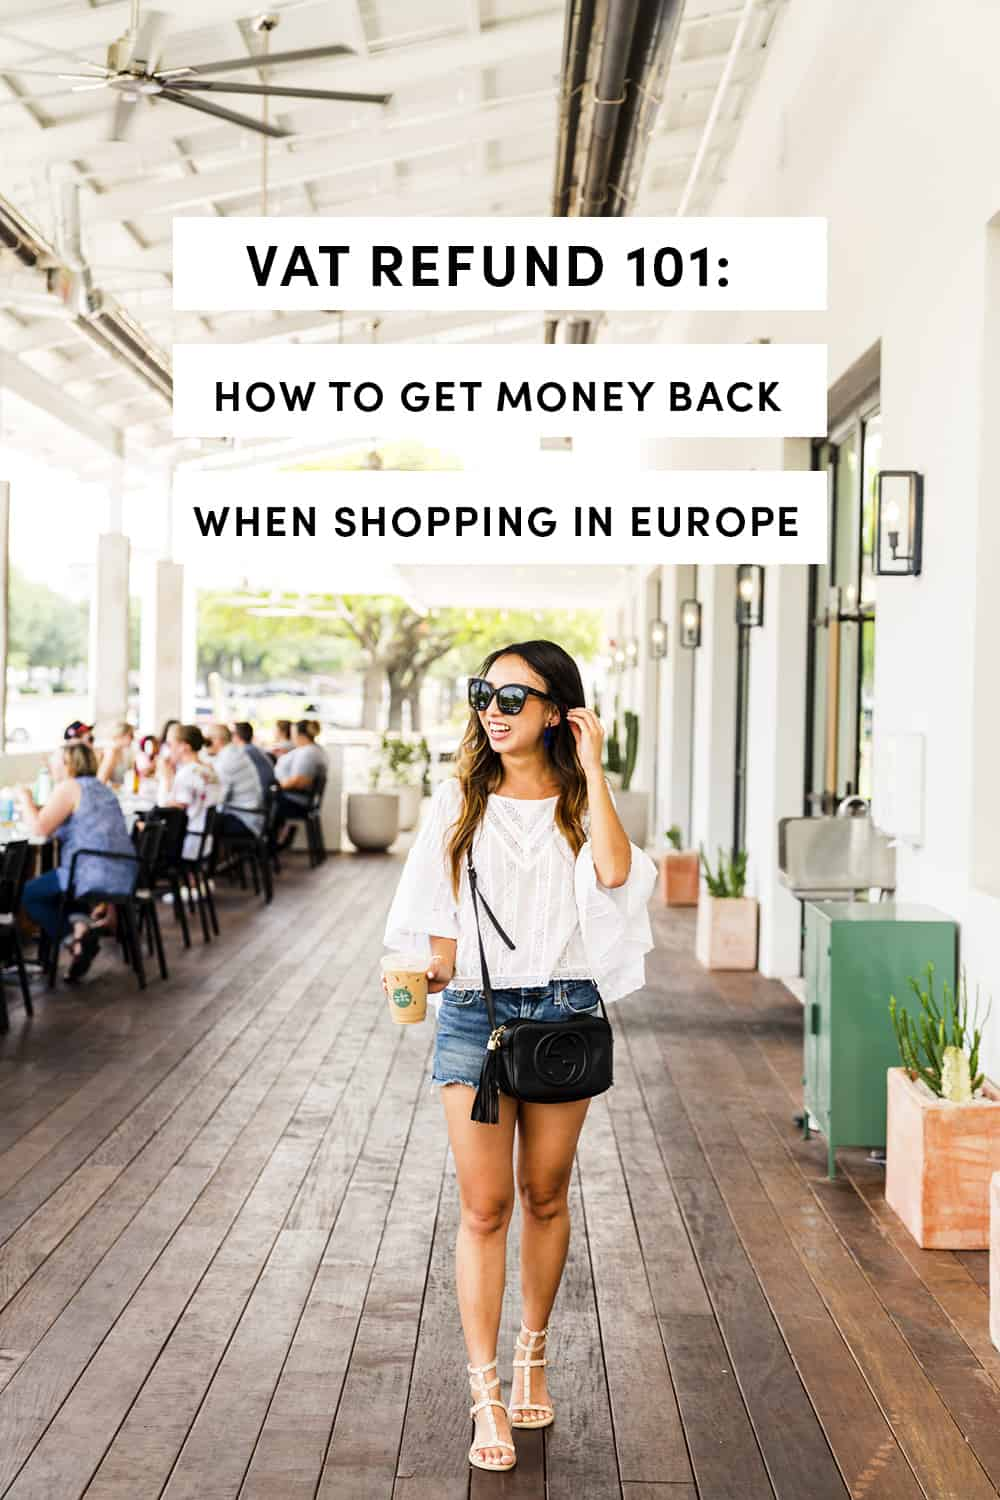 VAT Refund 101- How To Get Money Back When Shopping In Europe